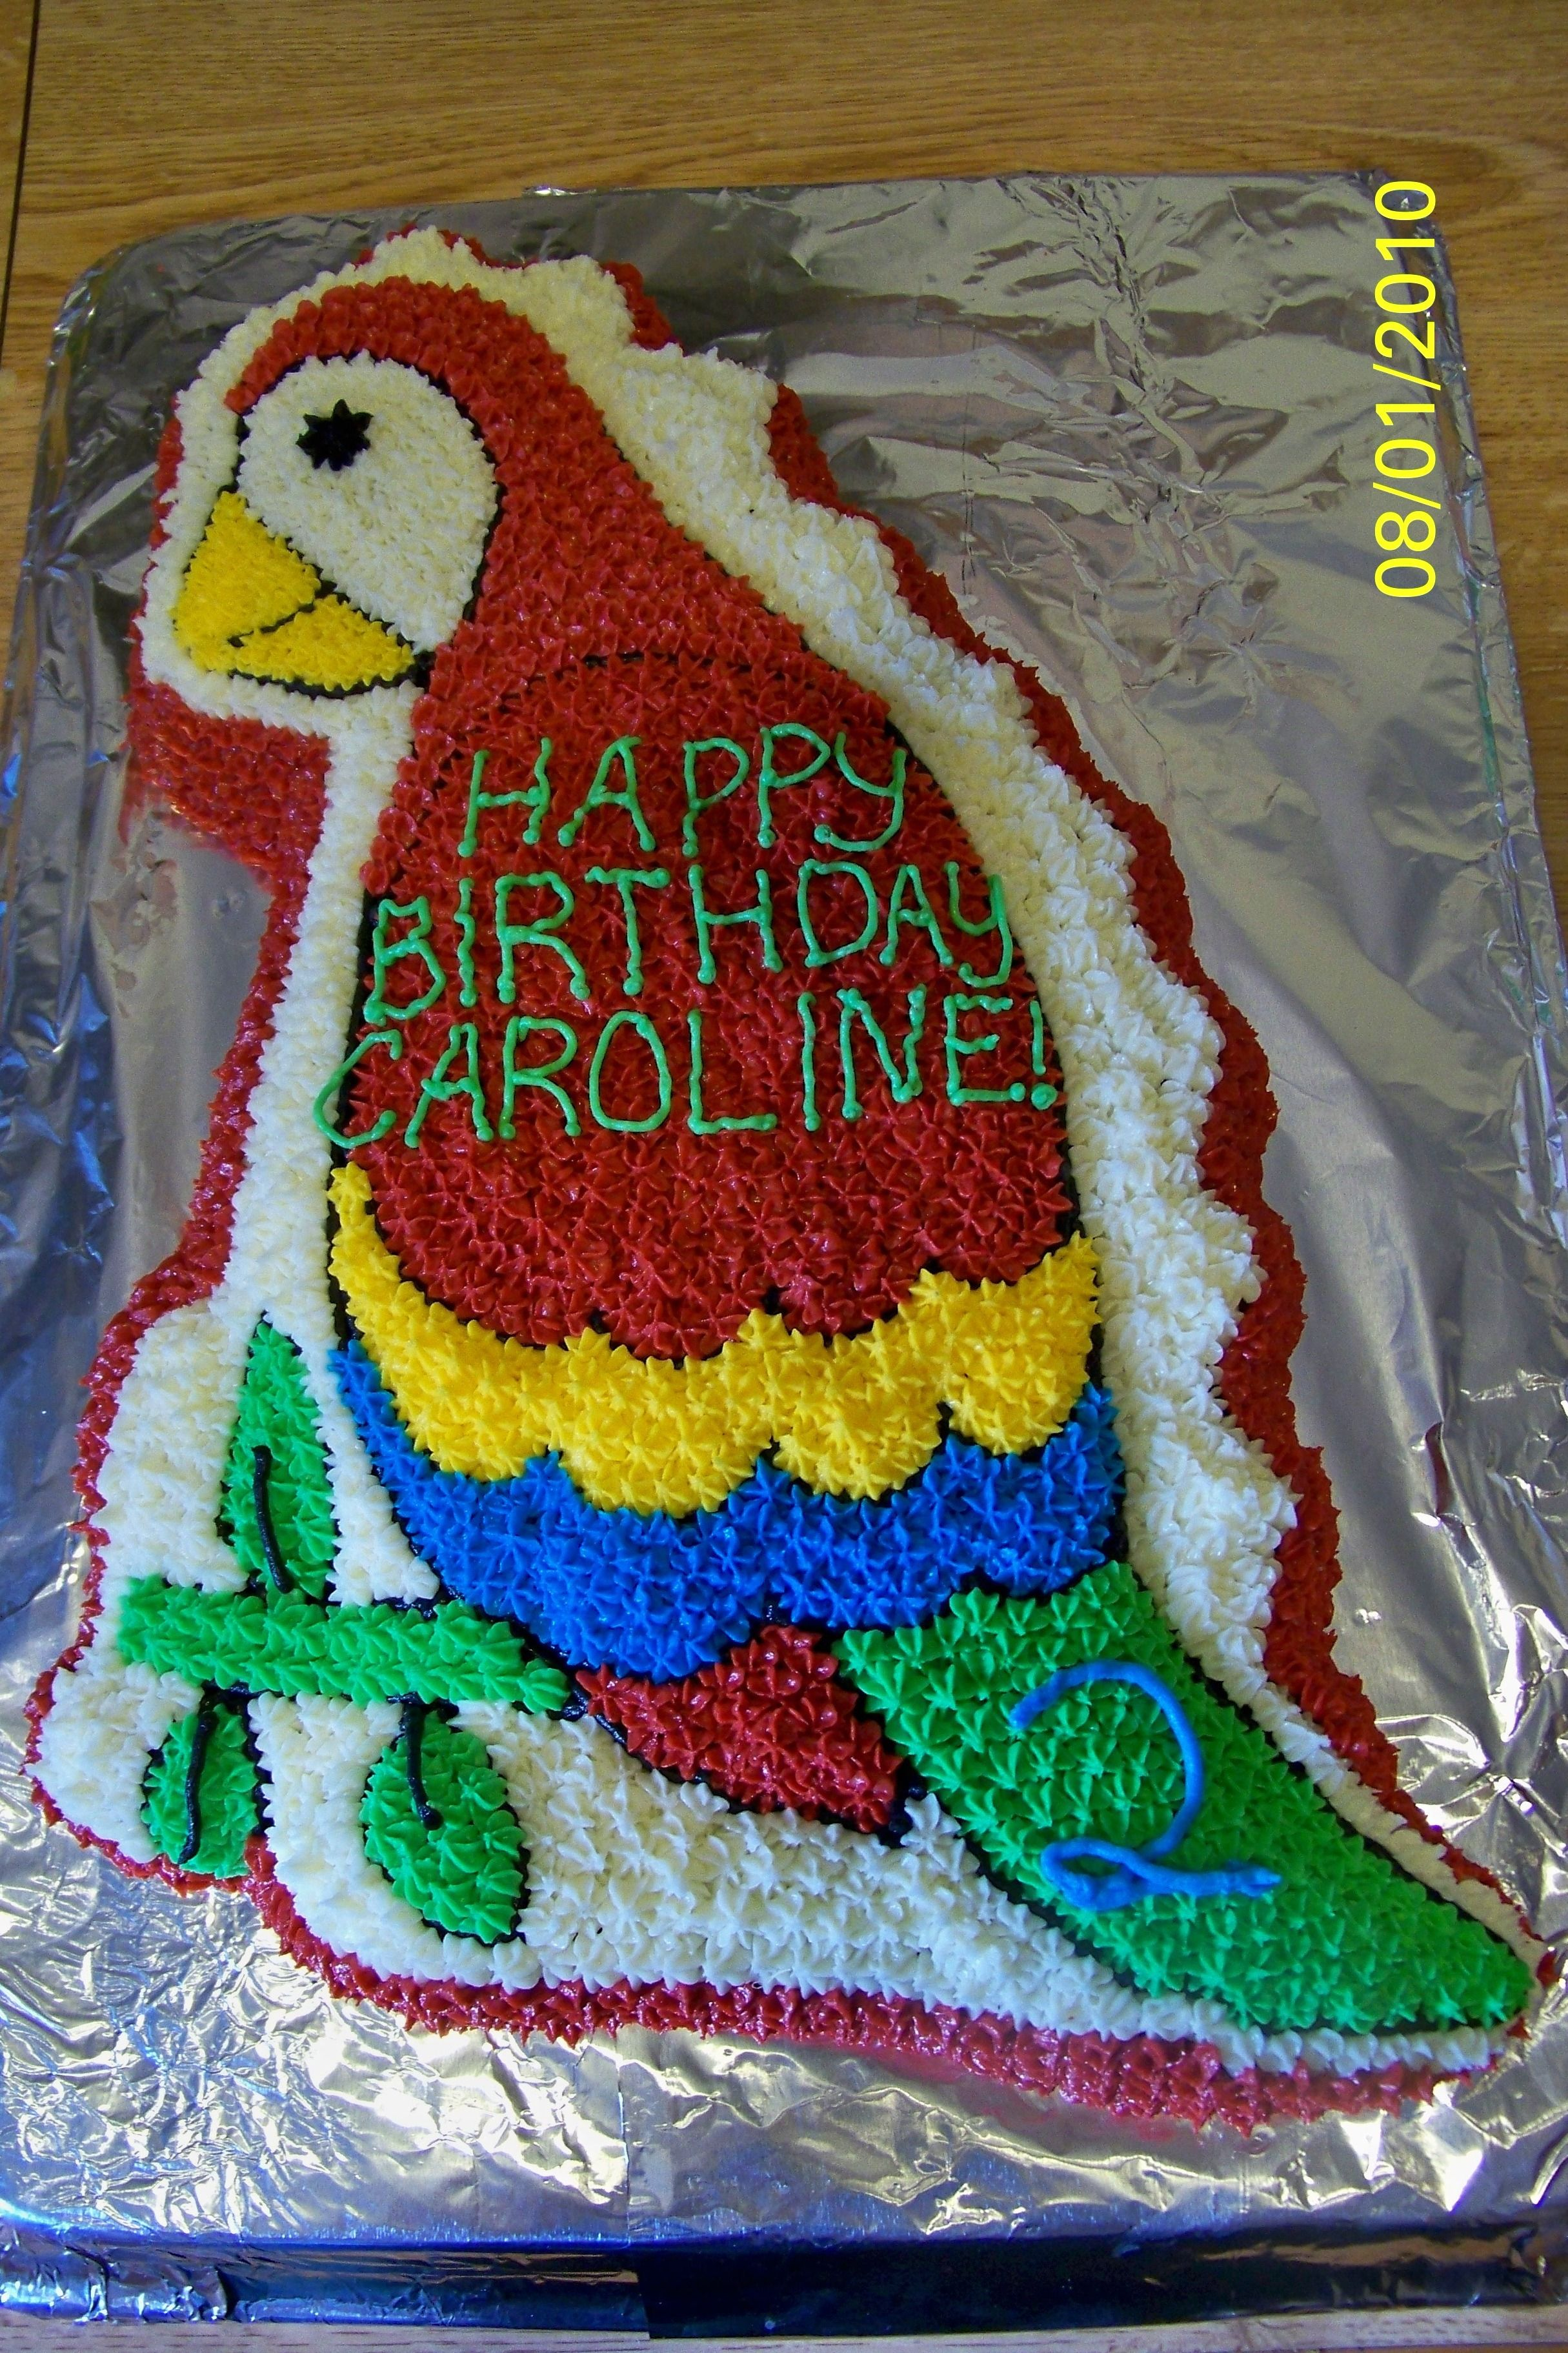 Astonishing Parrot Cake Dinosaur Cake Pan What A Cool Way Too Use The Personalised Birthday Cards Cominlily Jamesorg